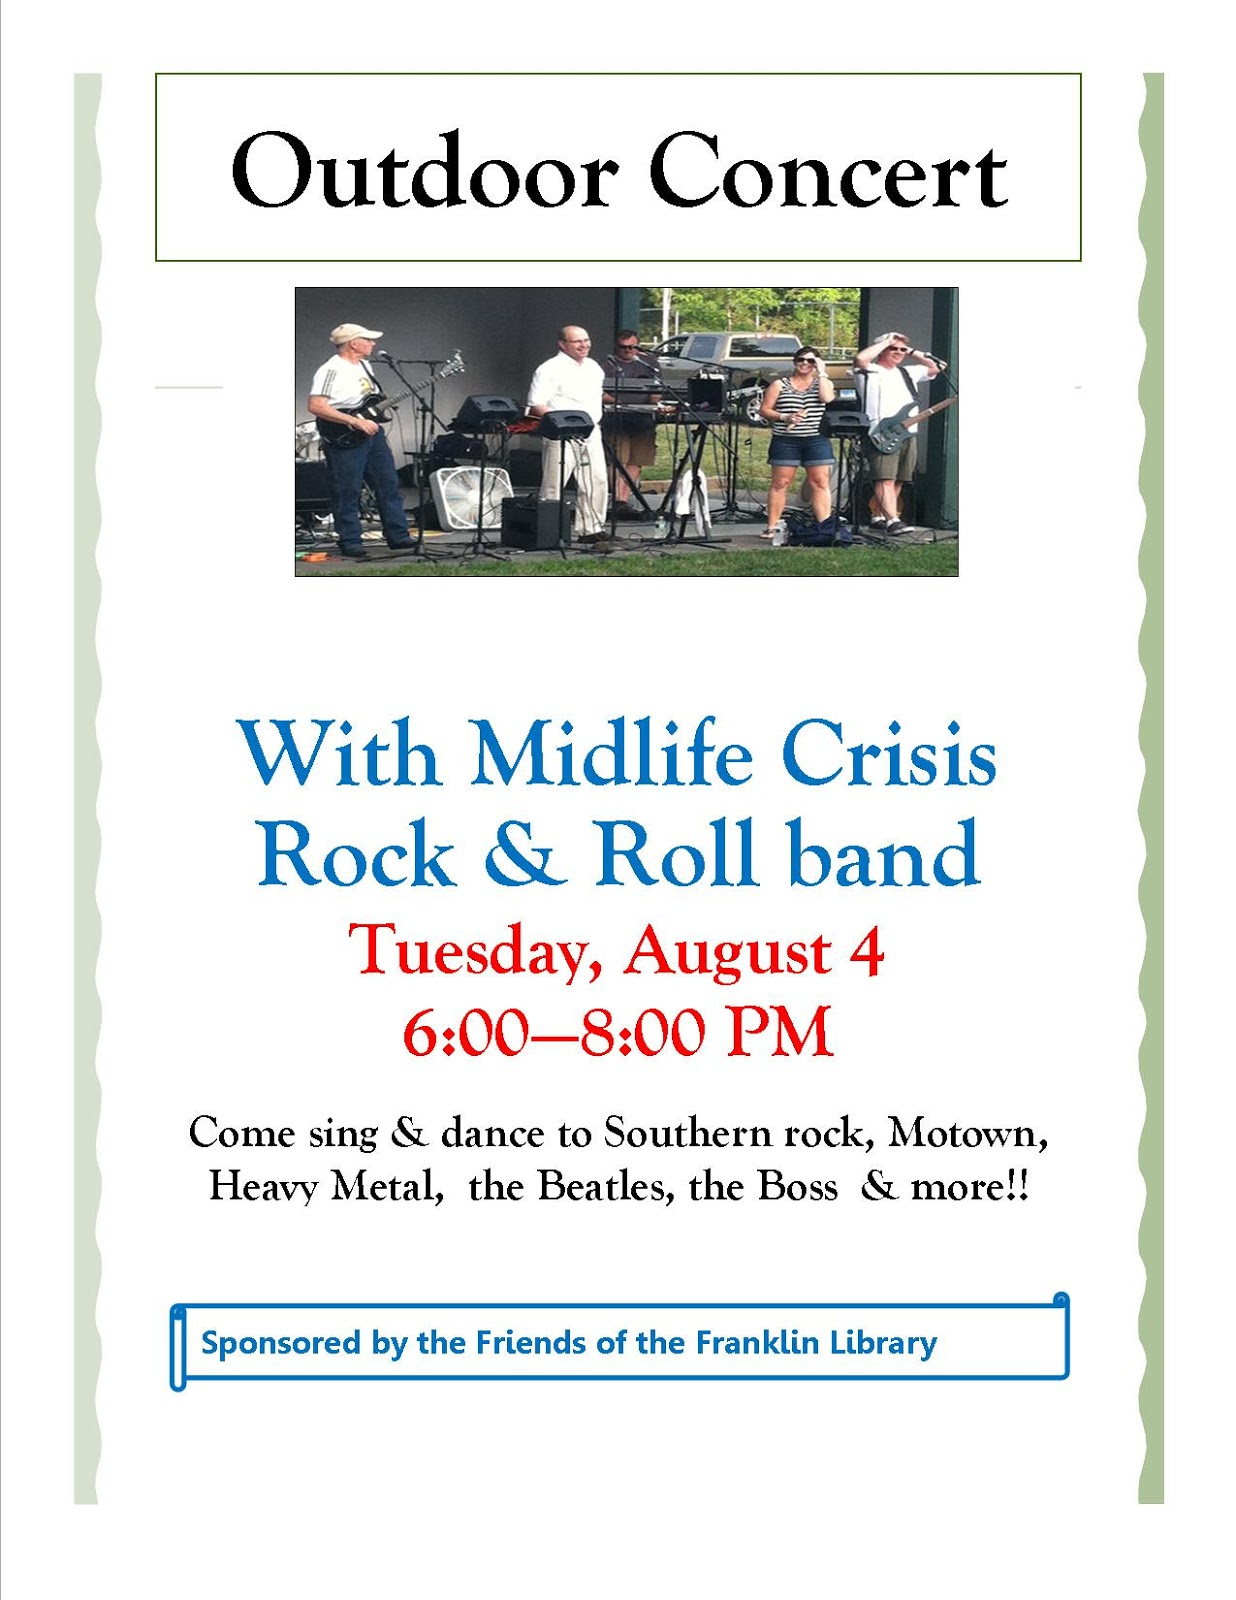 Midlife Crisis Rock and Roll Band Concert - Aug 4, 6:00 PM